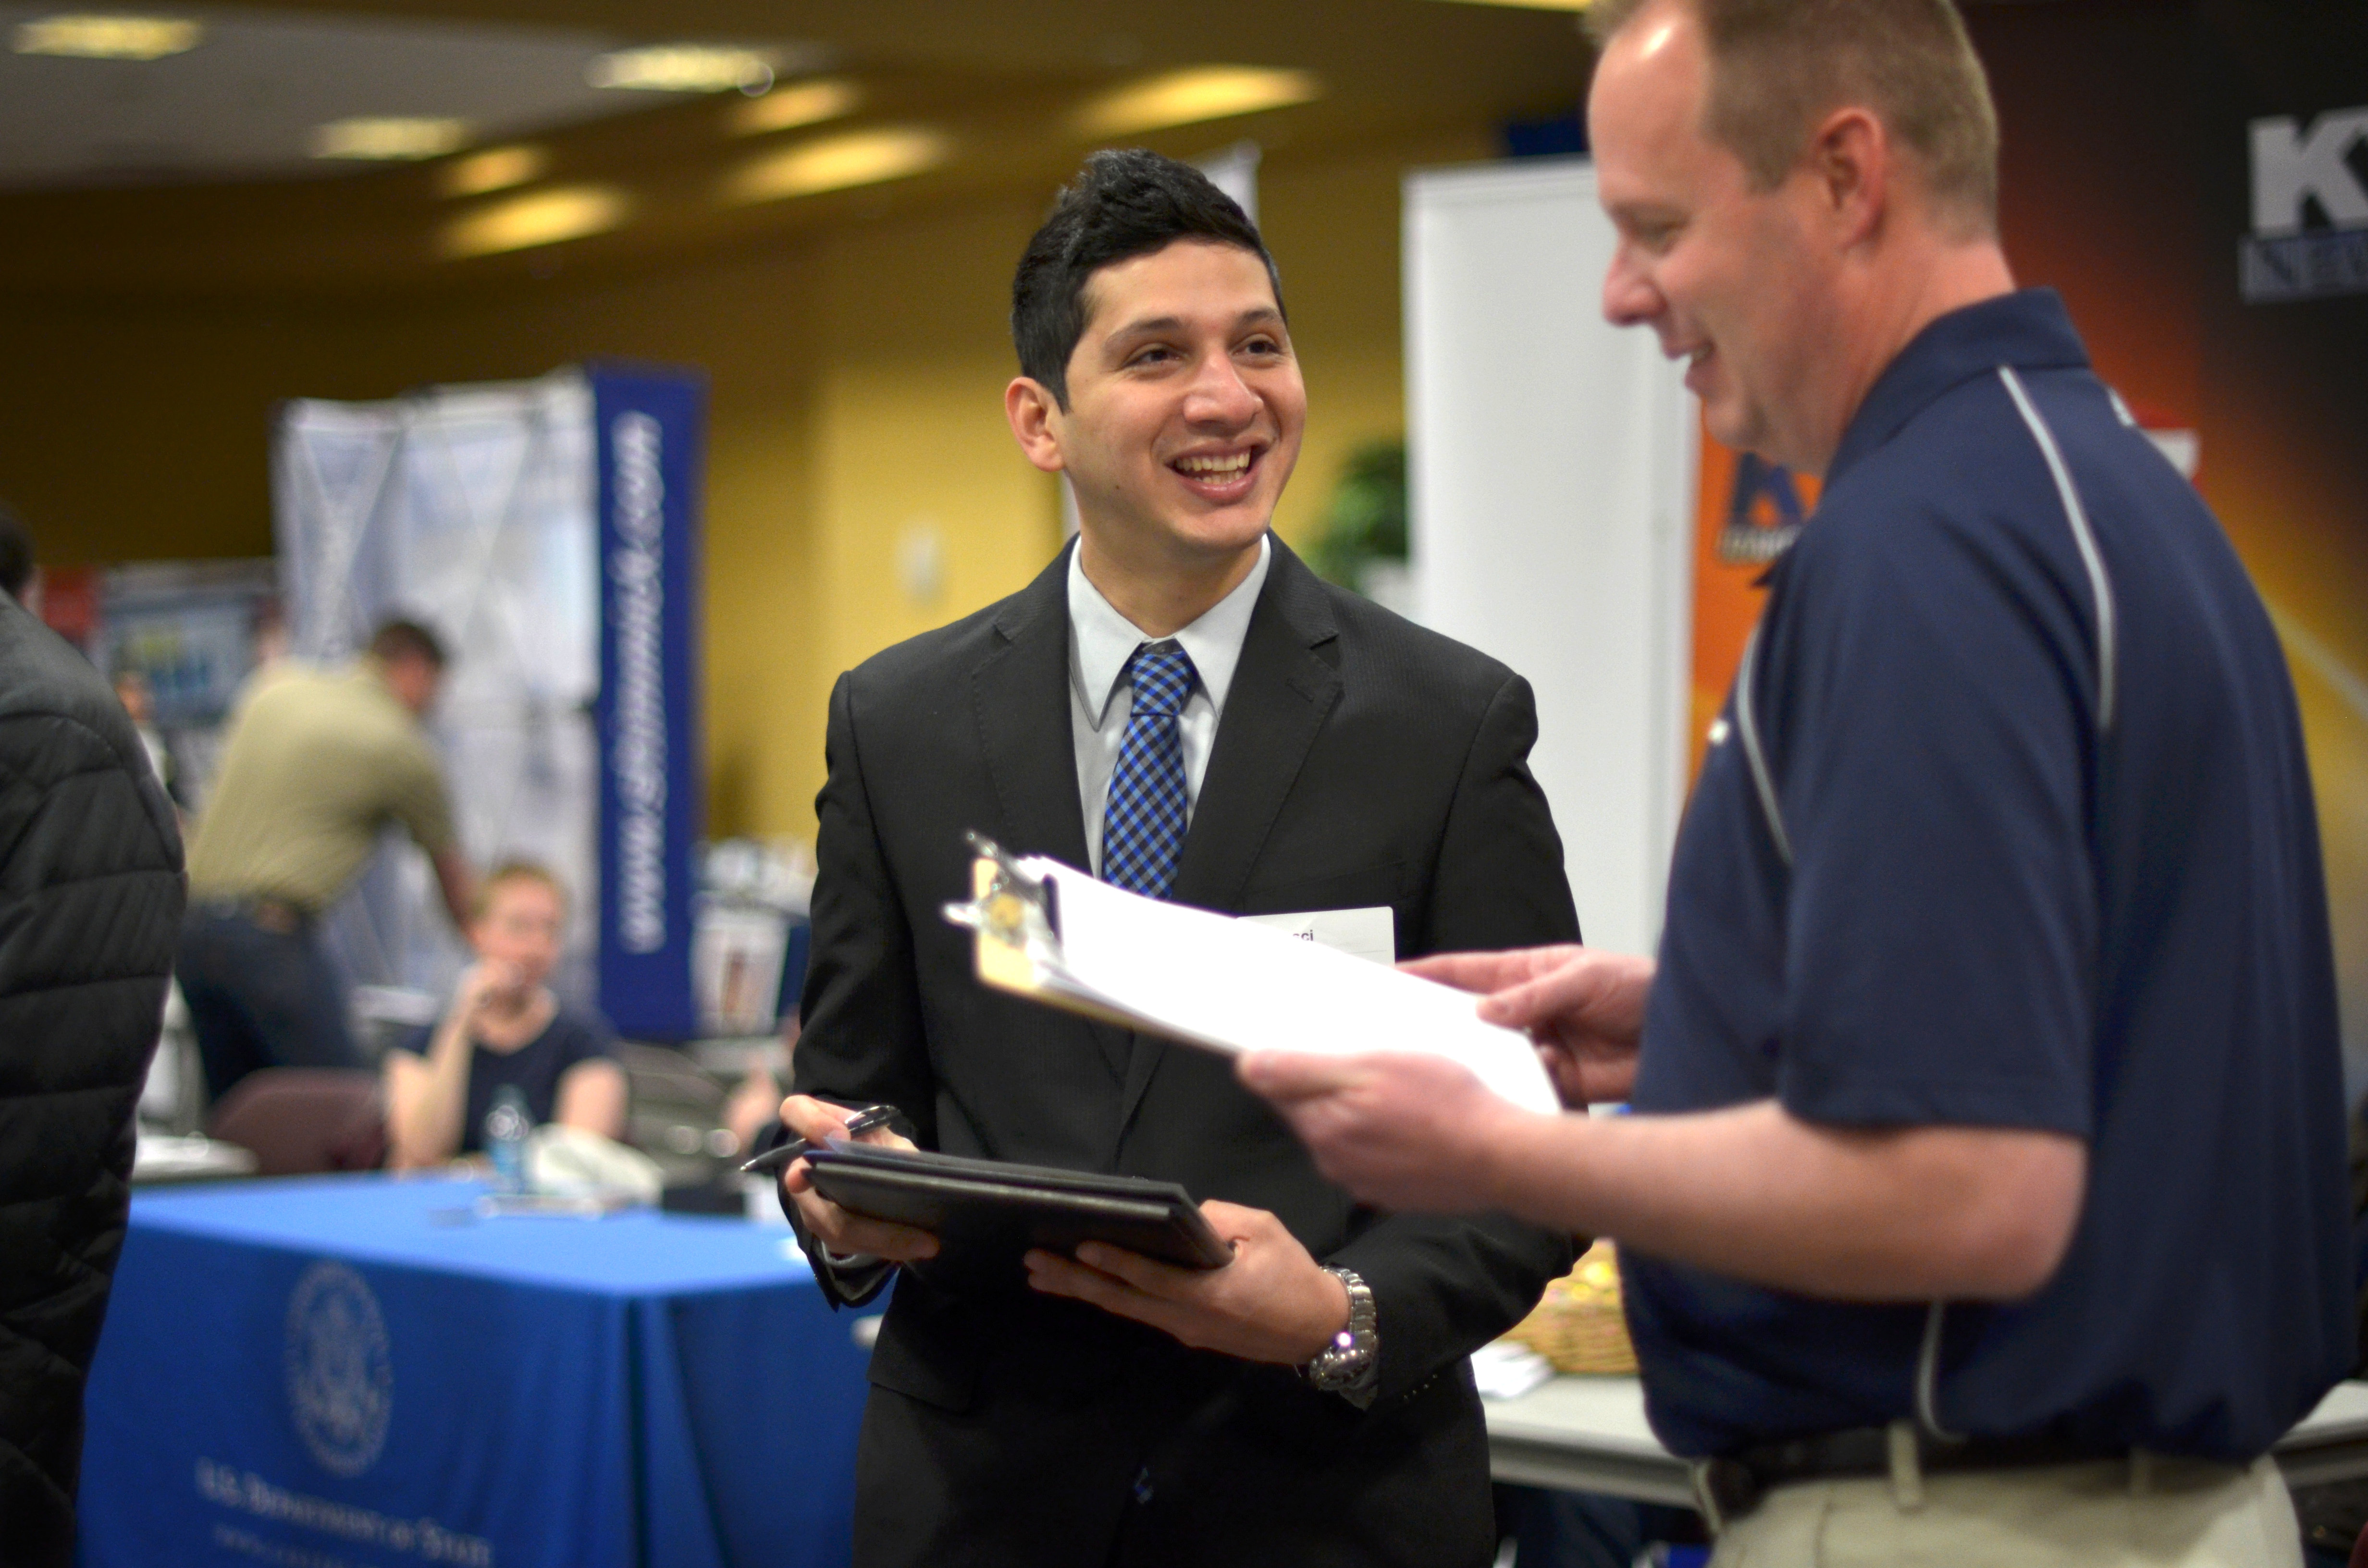 Student networking with an employer at the Career Fair